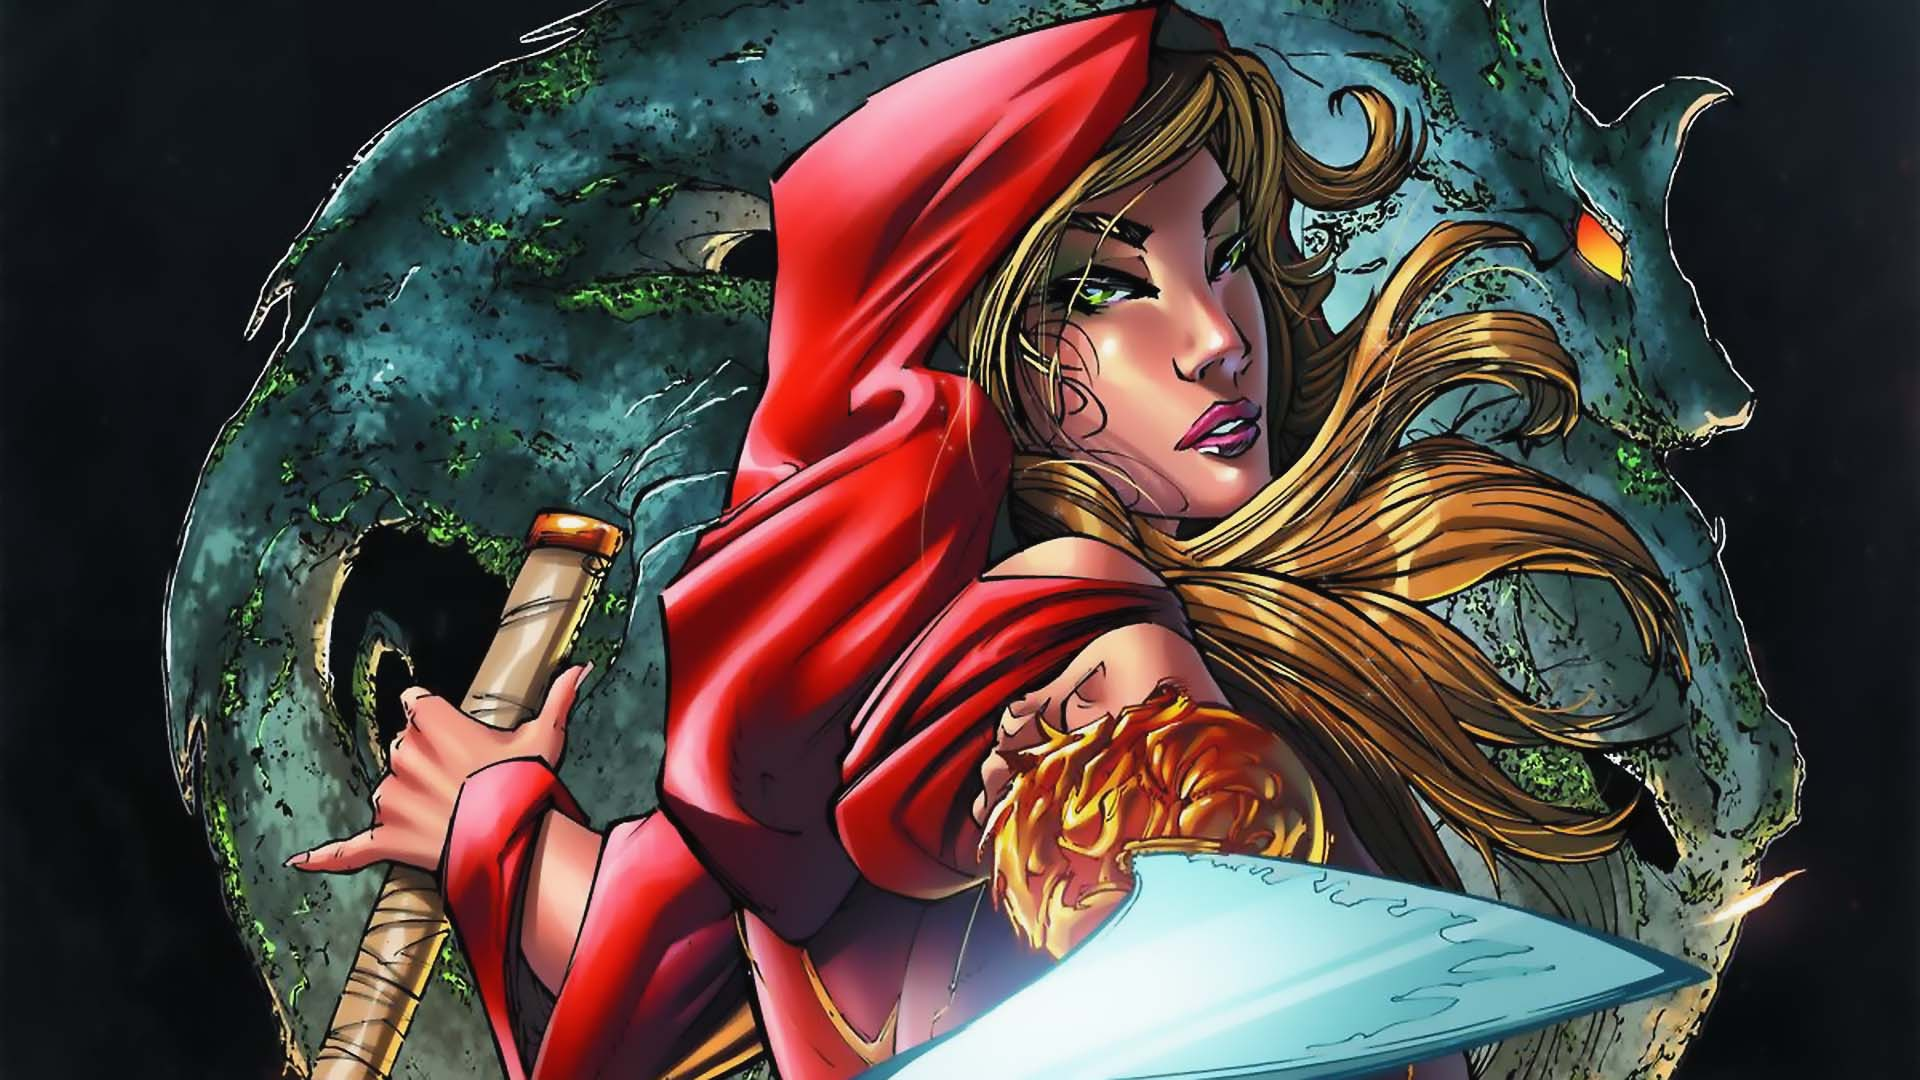 Grimm Fairy Tales Code Red HD Wallpaper Background